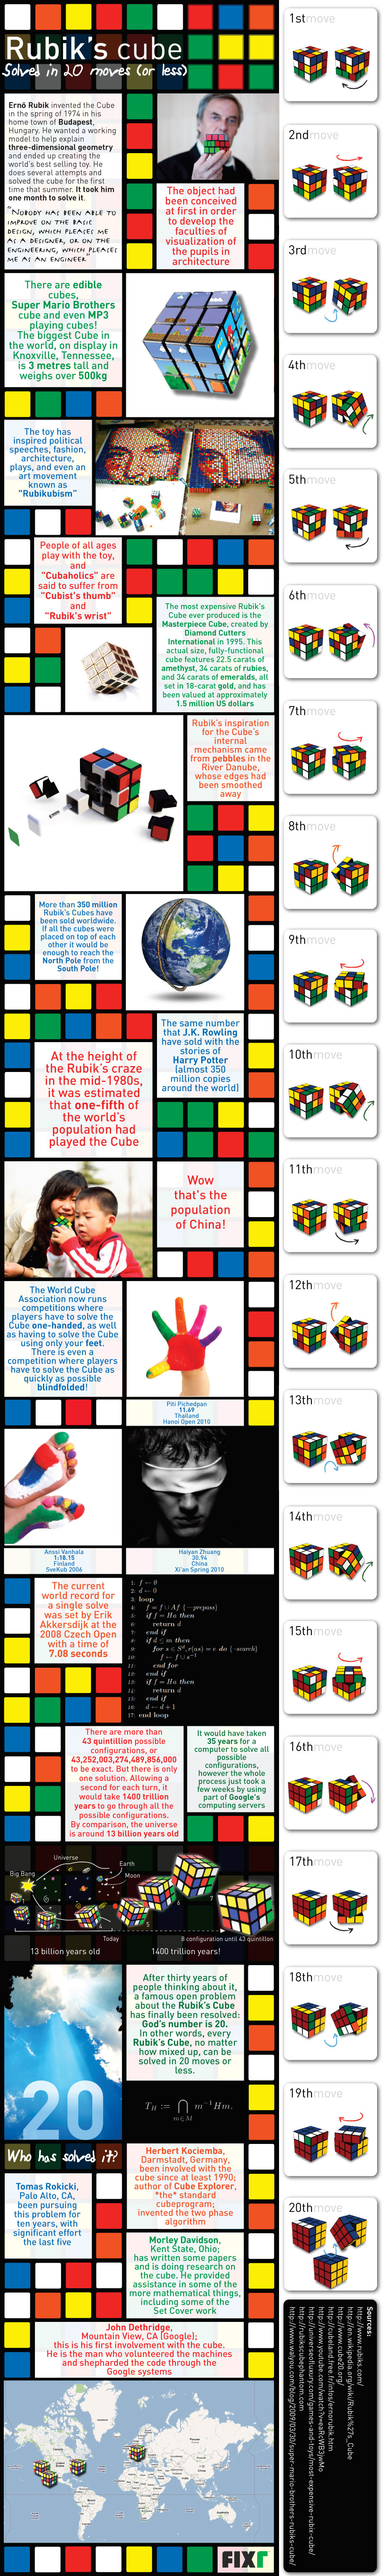 Unbelievable but True: How to Solve the Rubik Cube in 20 Moves or Less! - Infographic